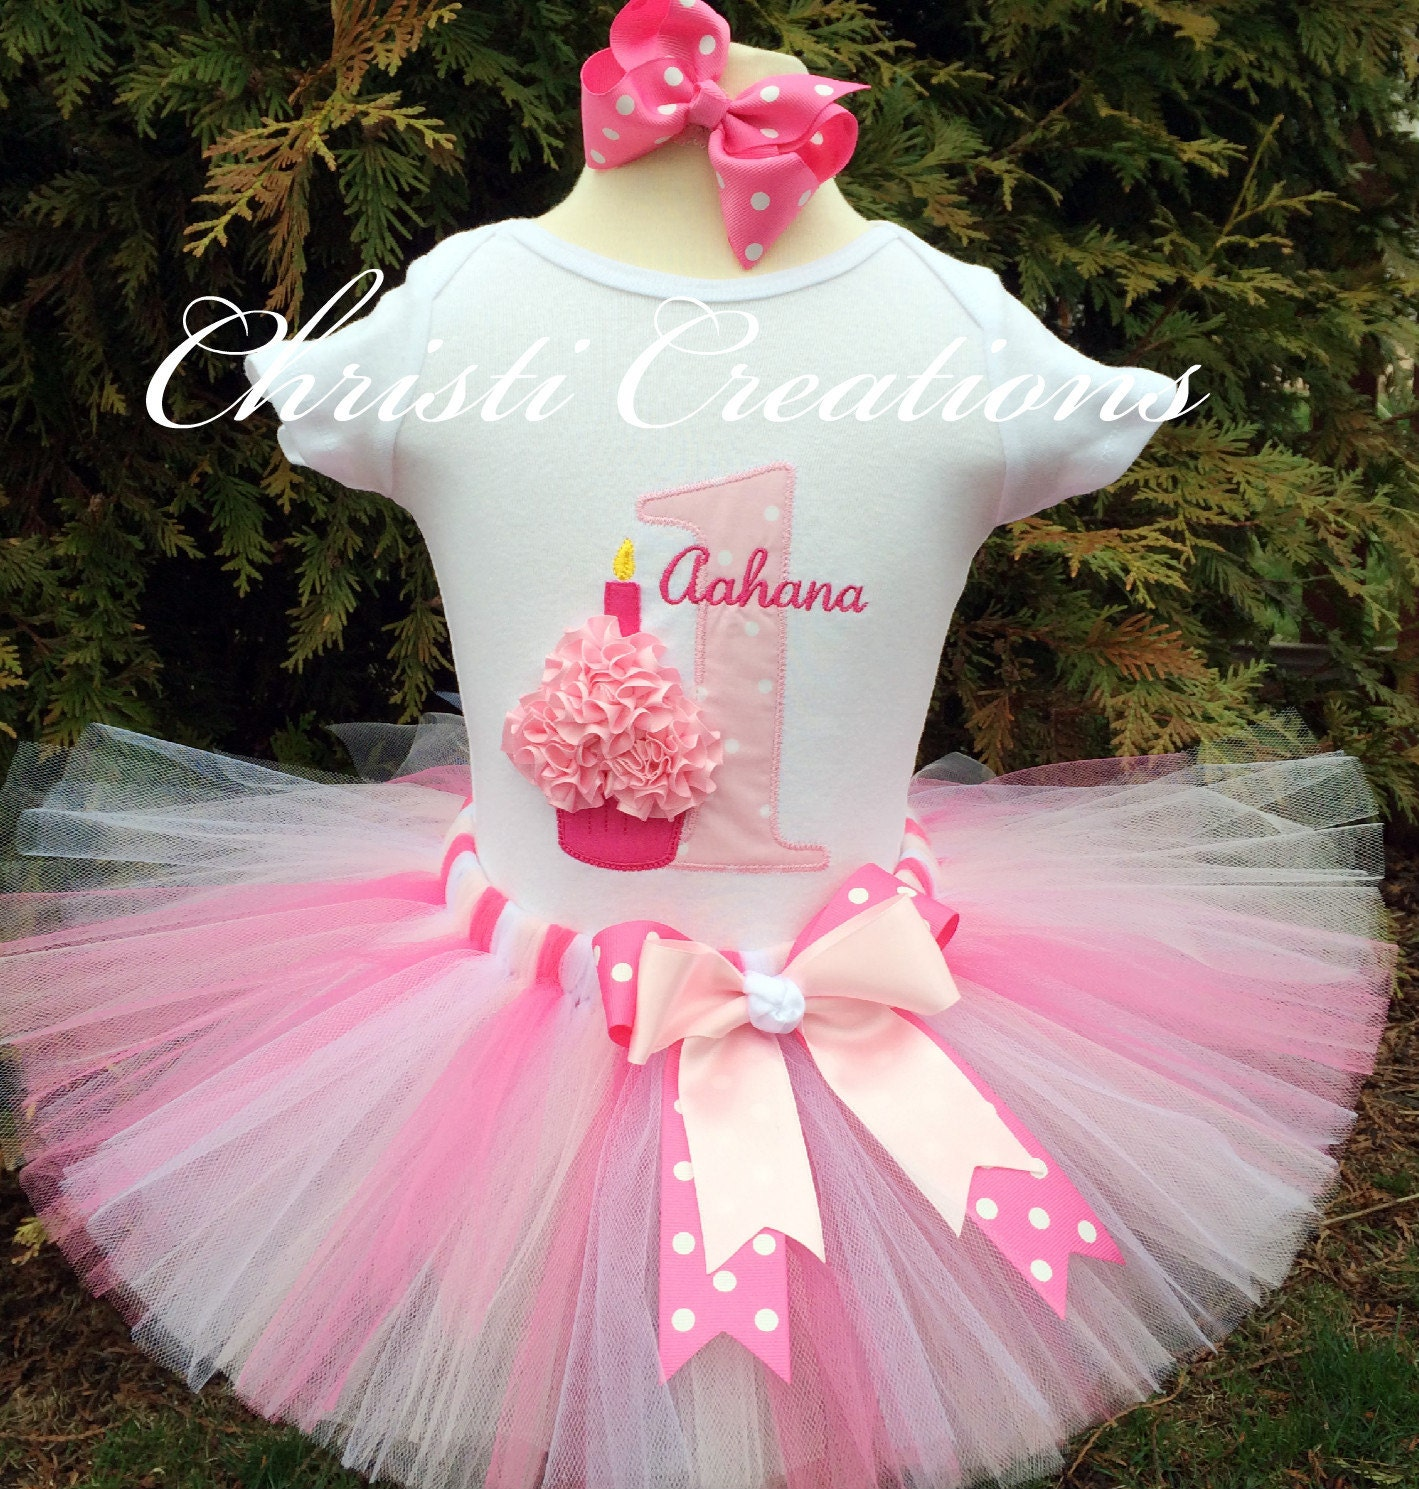 Rainbow Unicorn Tutu Birthday Outfits for Baby Girls in India. Unicorn rainbow tutu outfits designed to dress baby girls in India for special occasions like birthdays and weddings. Featuring in new collection , breath-taking unicorn rainbow tutu dress for baby girls are a must have.